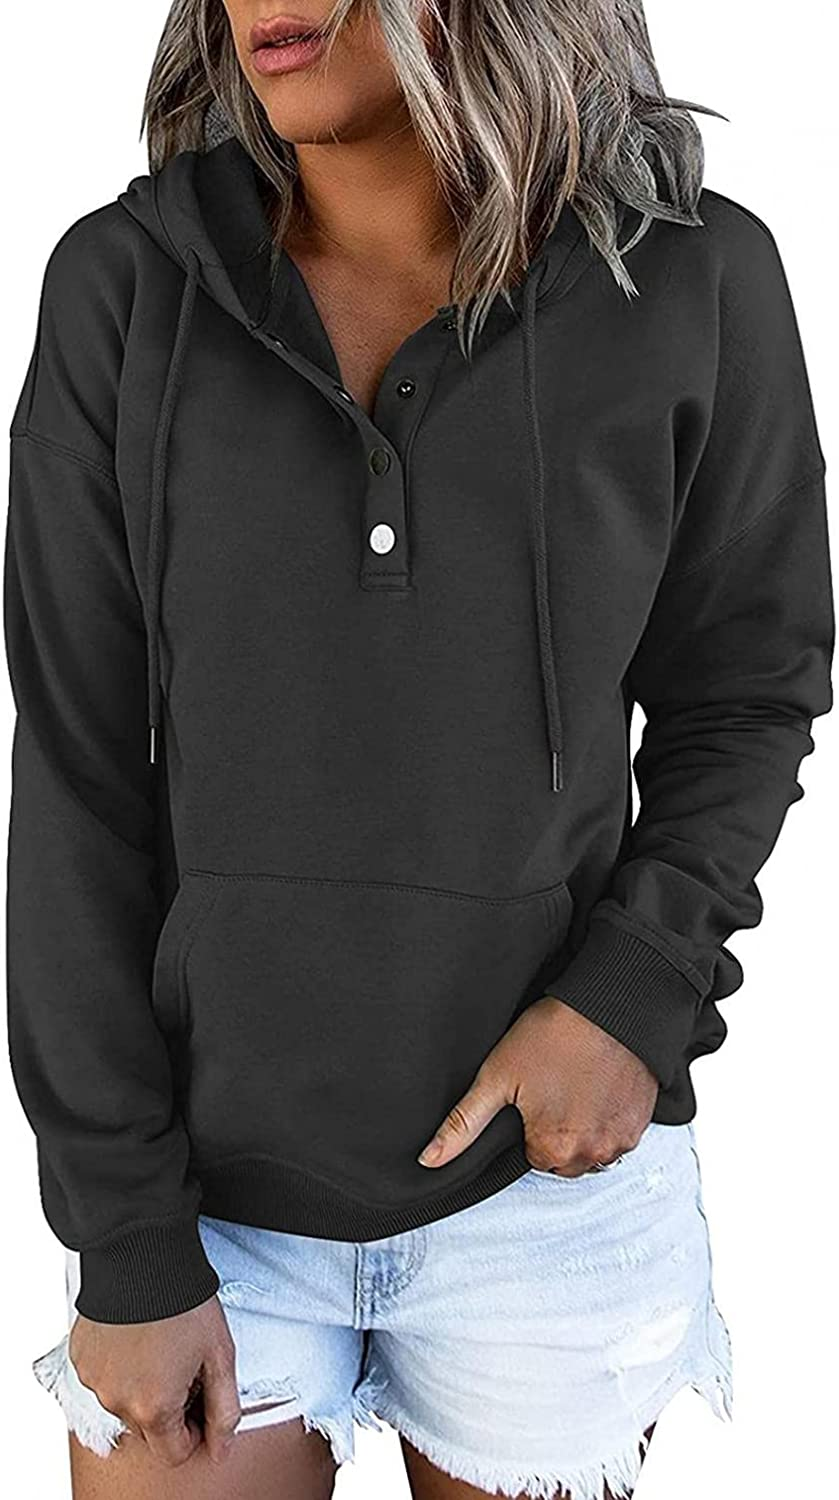 felwors Hoodies for Women, Womens Color Block Pullover Hoodies Loose Button Down Long Sleeve Sweatshirts with Pockets